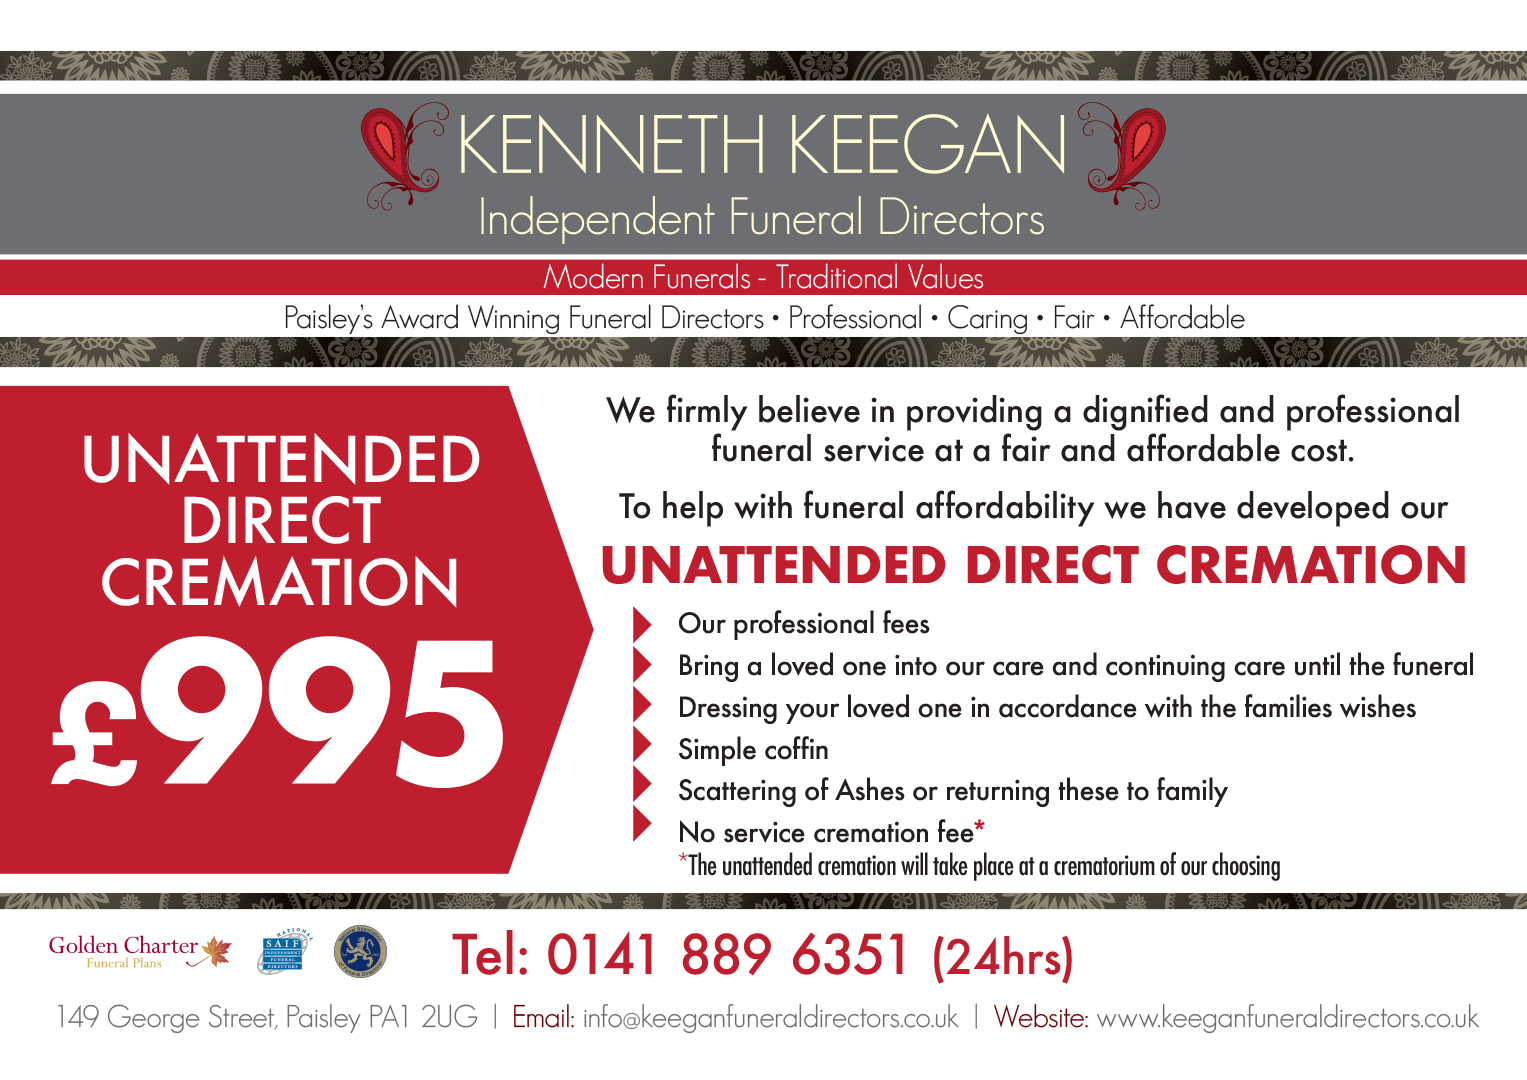 Kenneth-Keegan-Unattended-Direct-Cremation-A4L-03-05-2021